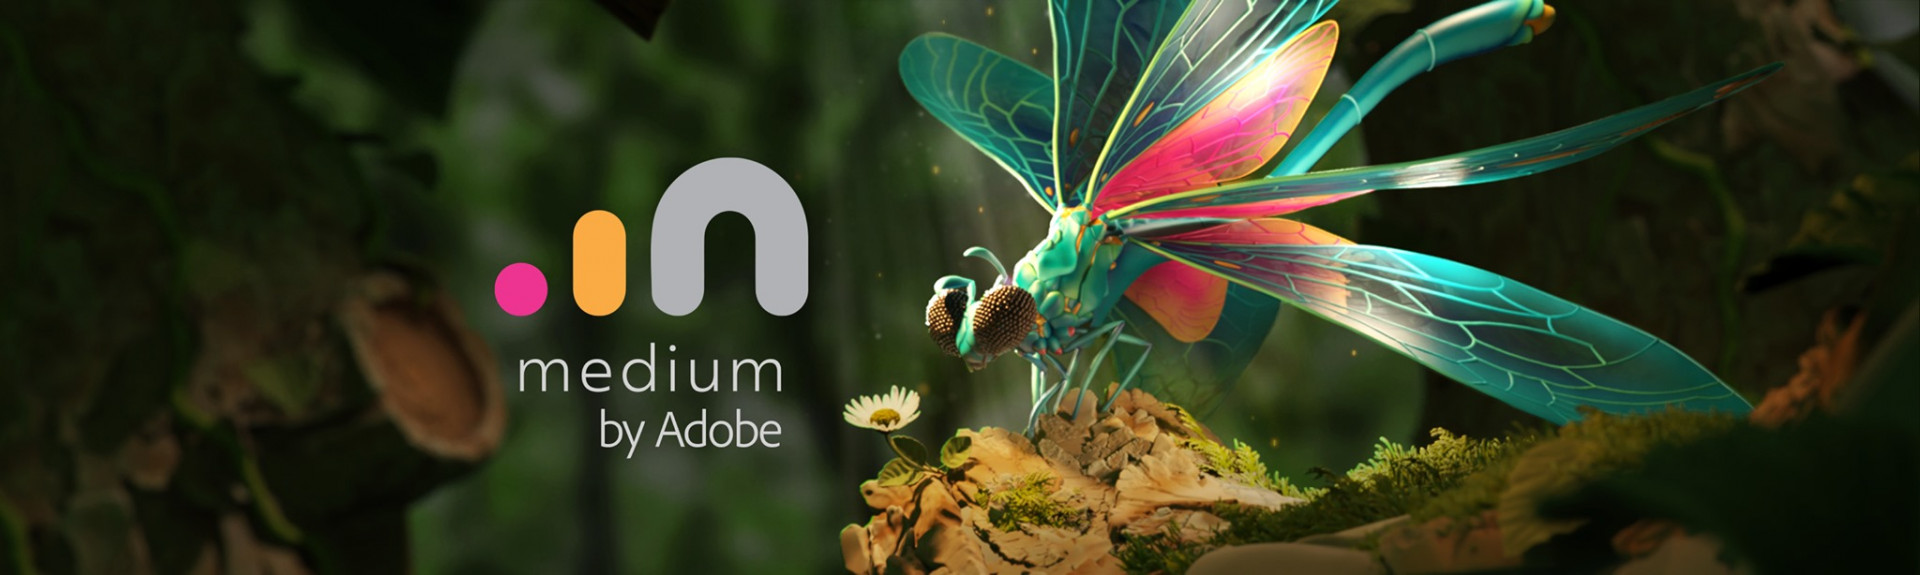 Medium by Adobe